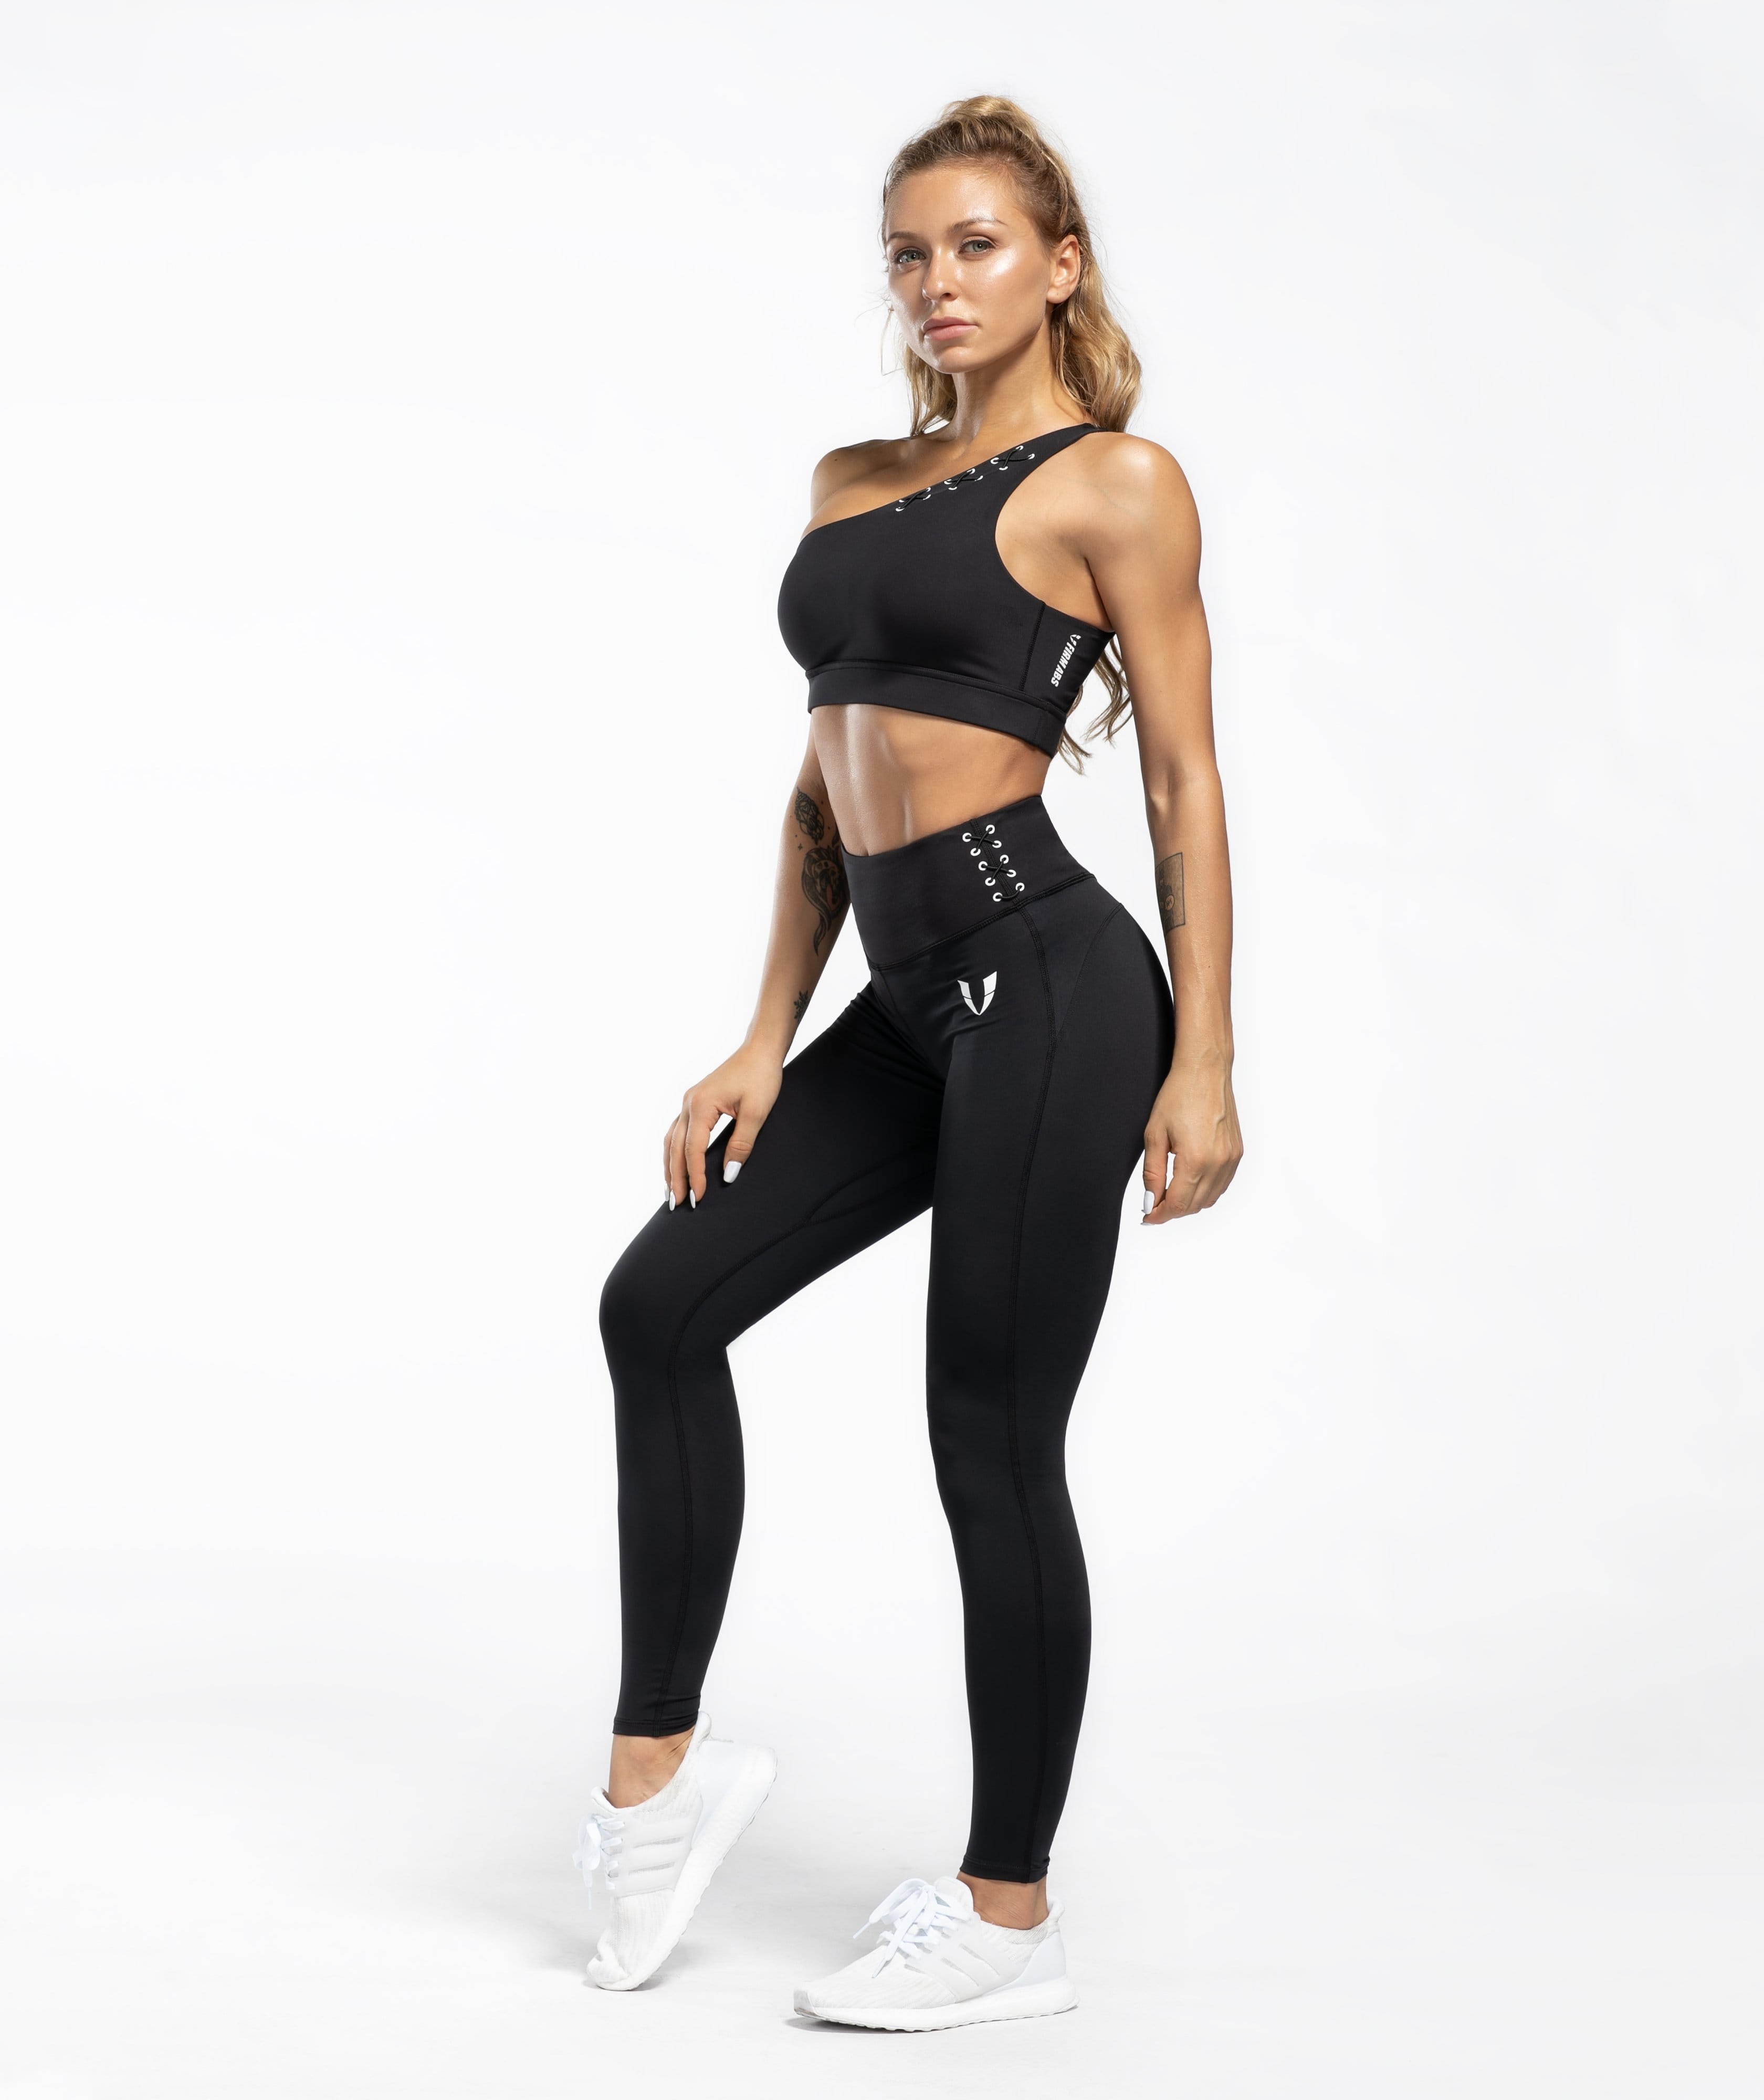 Honeypeach Sculpt Leggings - Black - Firm Abs Fitness